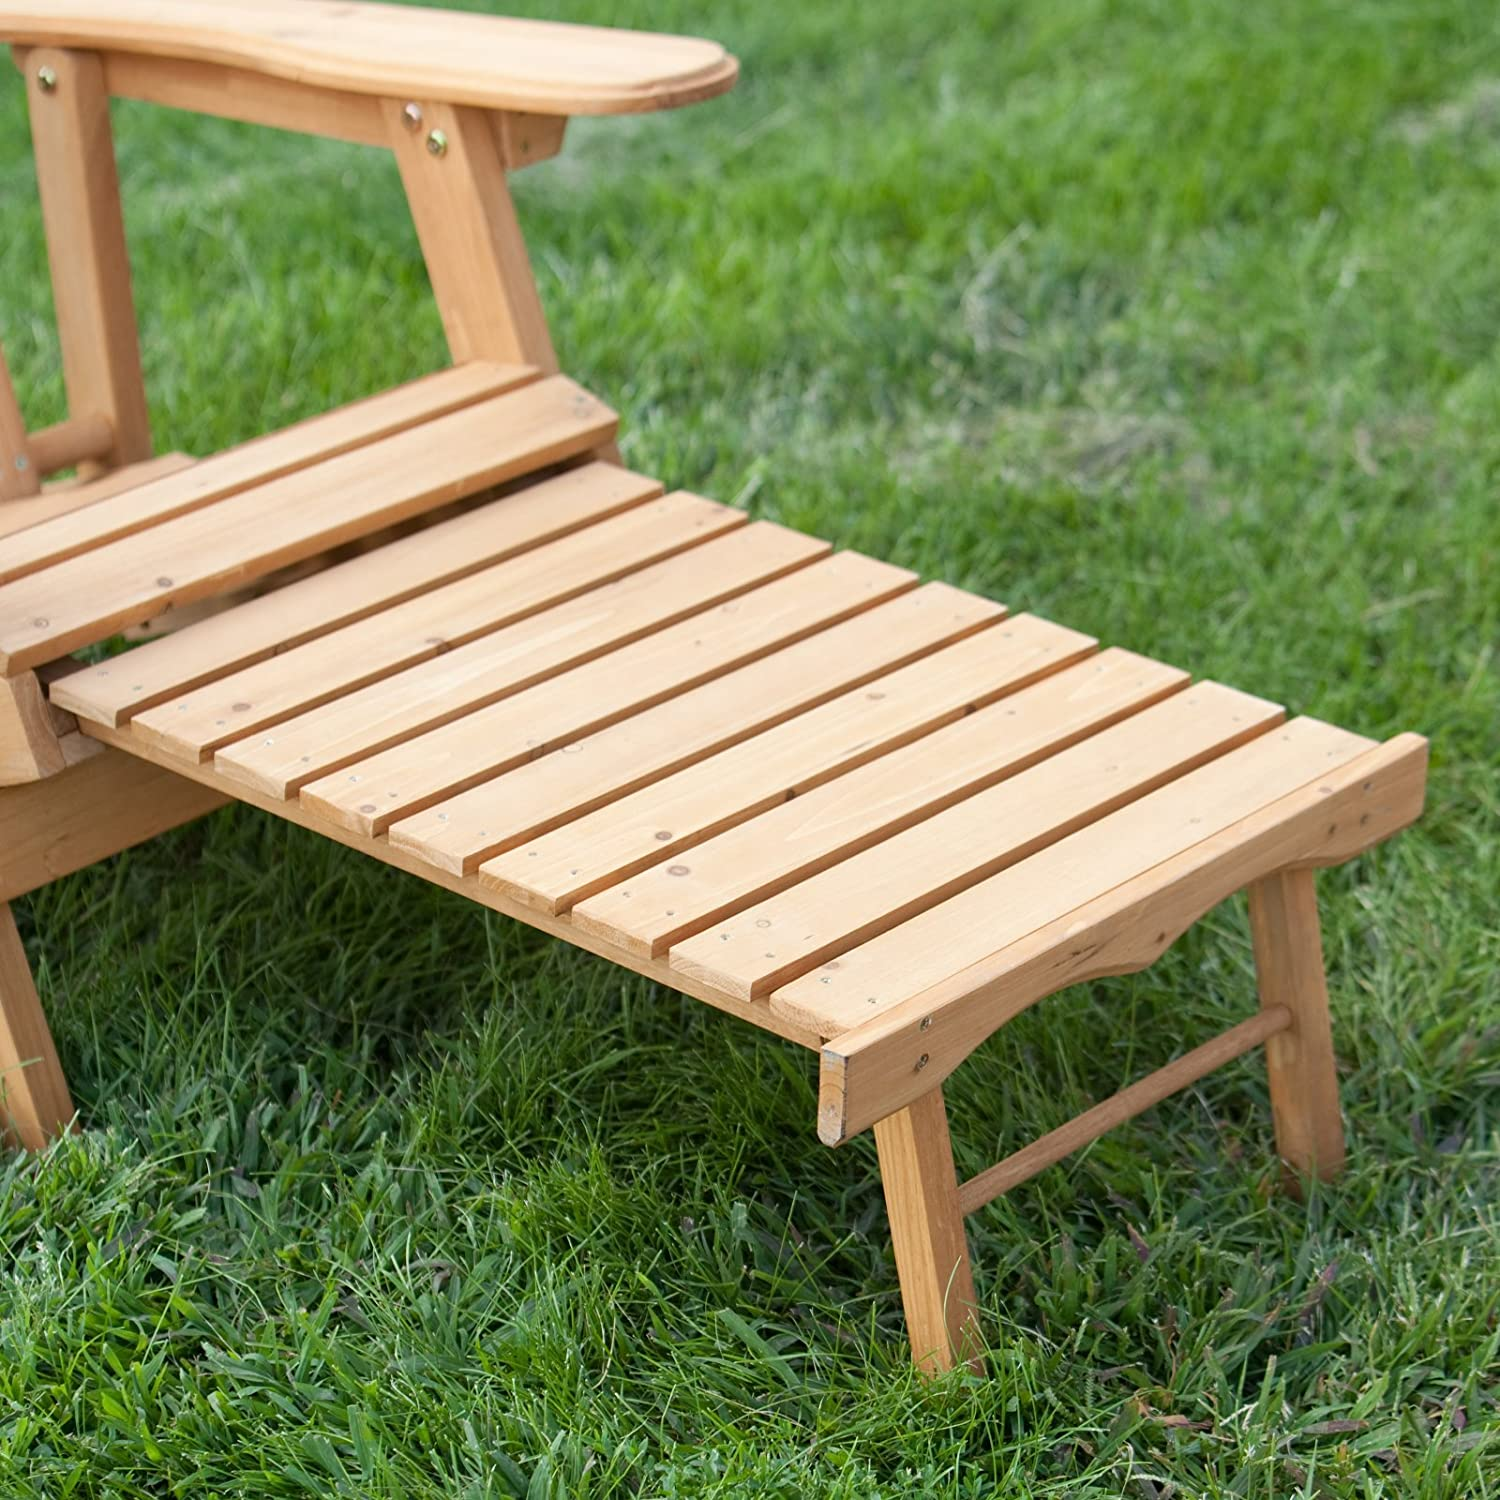 Amazon.com : Big Daddy Reclining Adirondack Chair With Pull Out Ottoman   Natural : Garden U0026 Outdoor